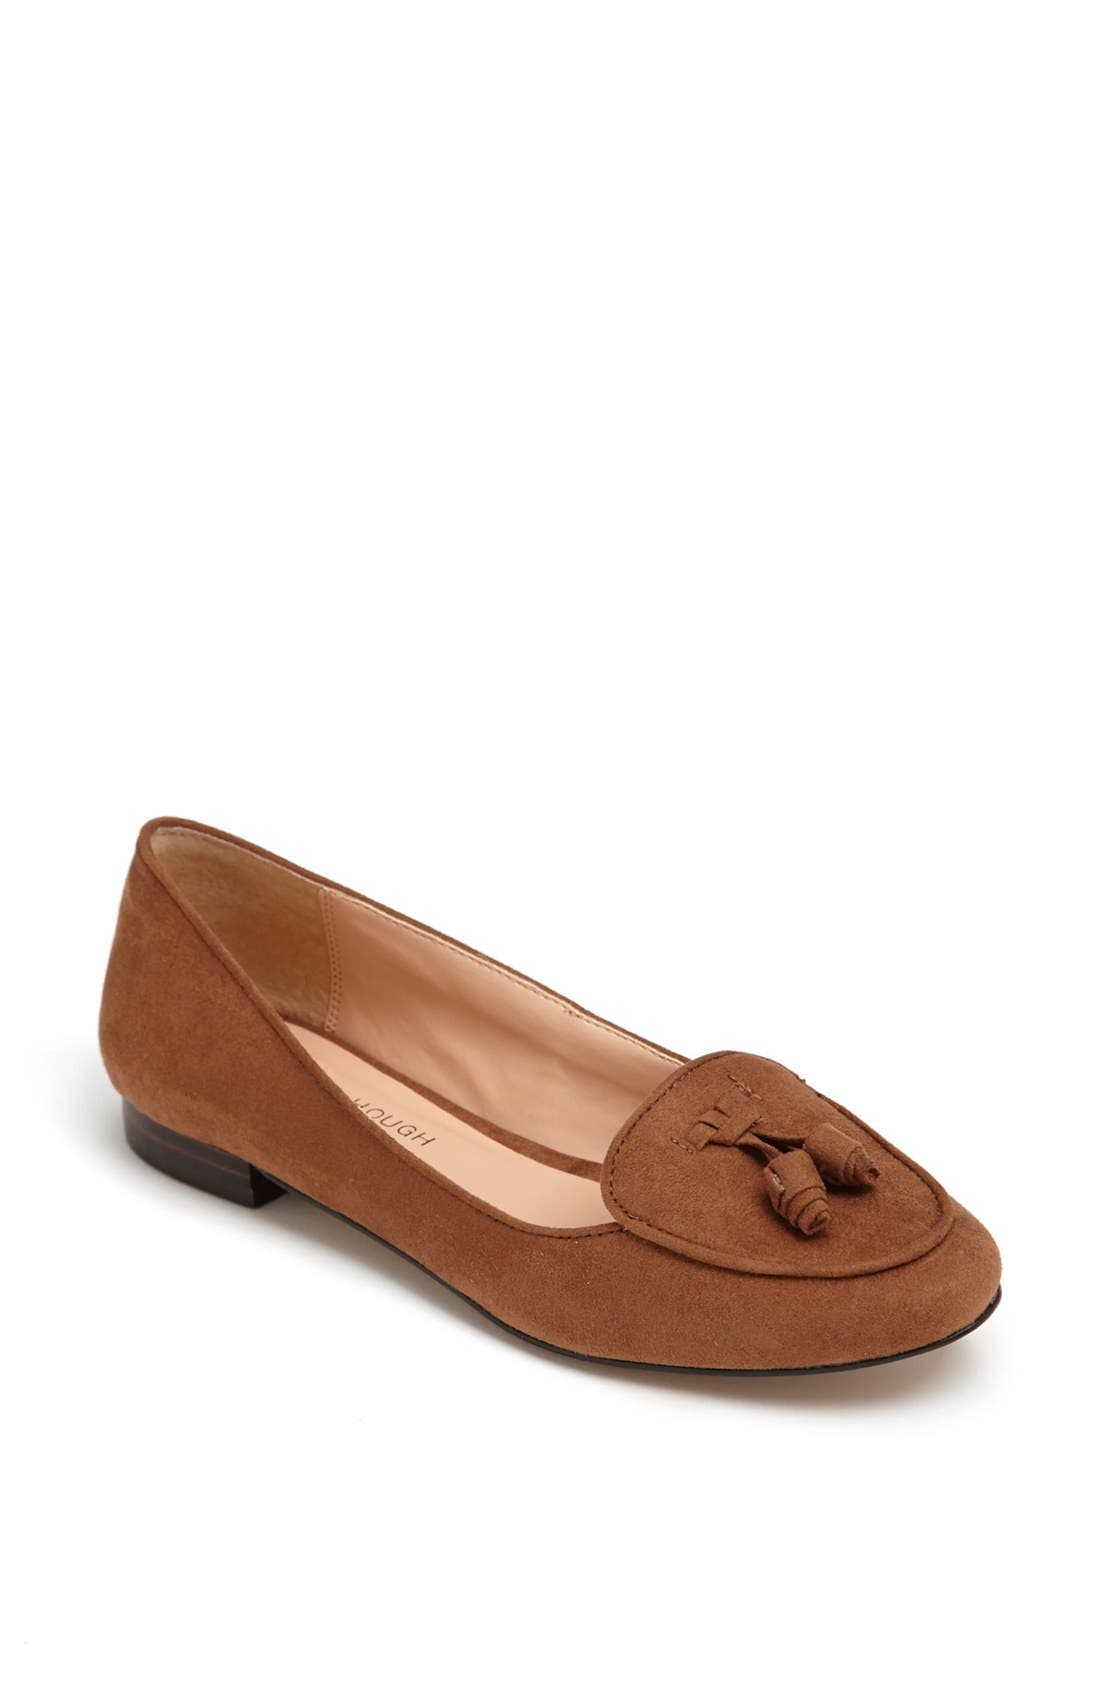 Alternate Image 1 Selected - Julianne Hough for Sole Society 'Cambria' Smoking Slipper Flat